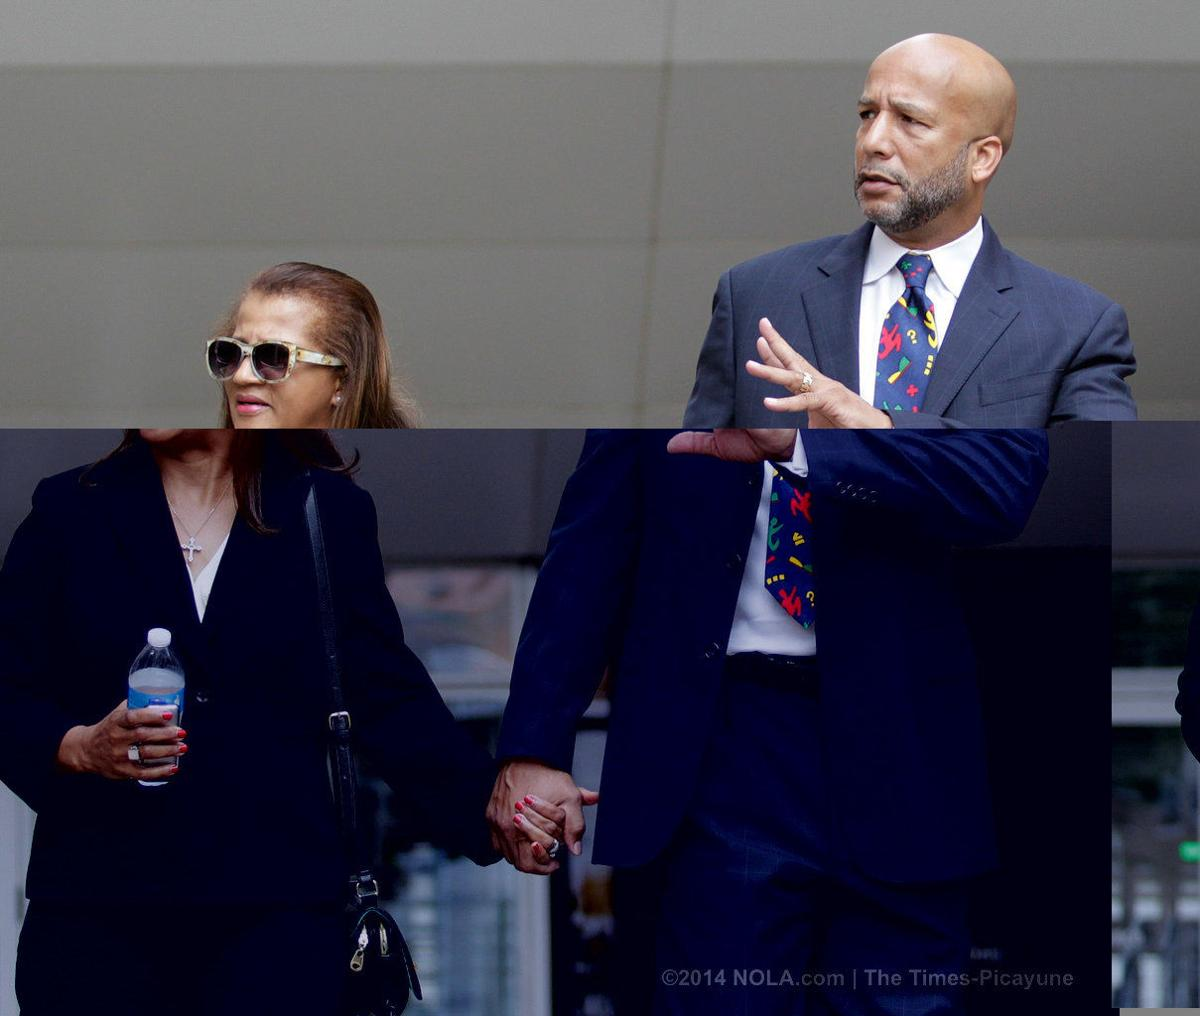 Ray Nagin says he has $23.65 in the bank, gets a public defender for his appeal